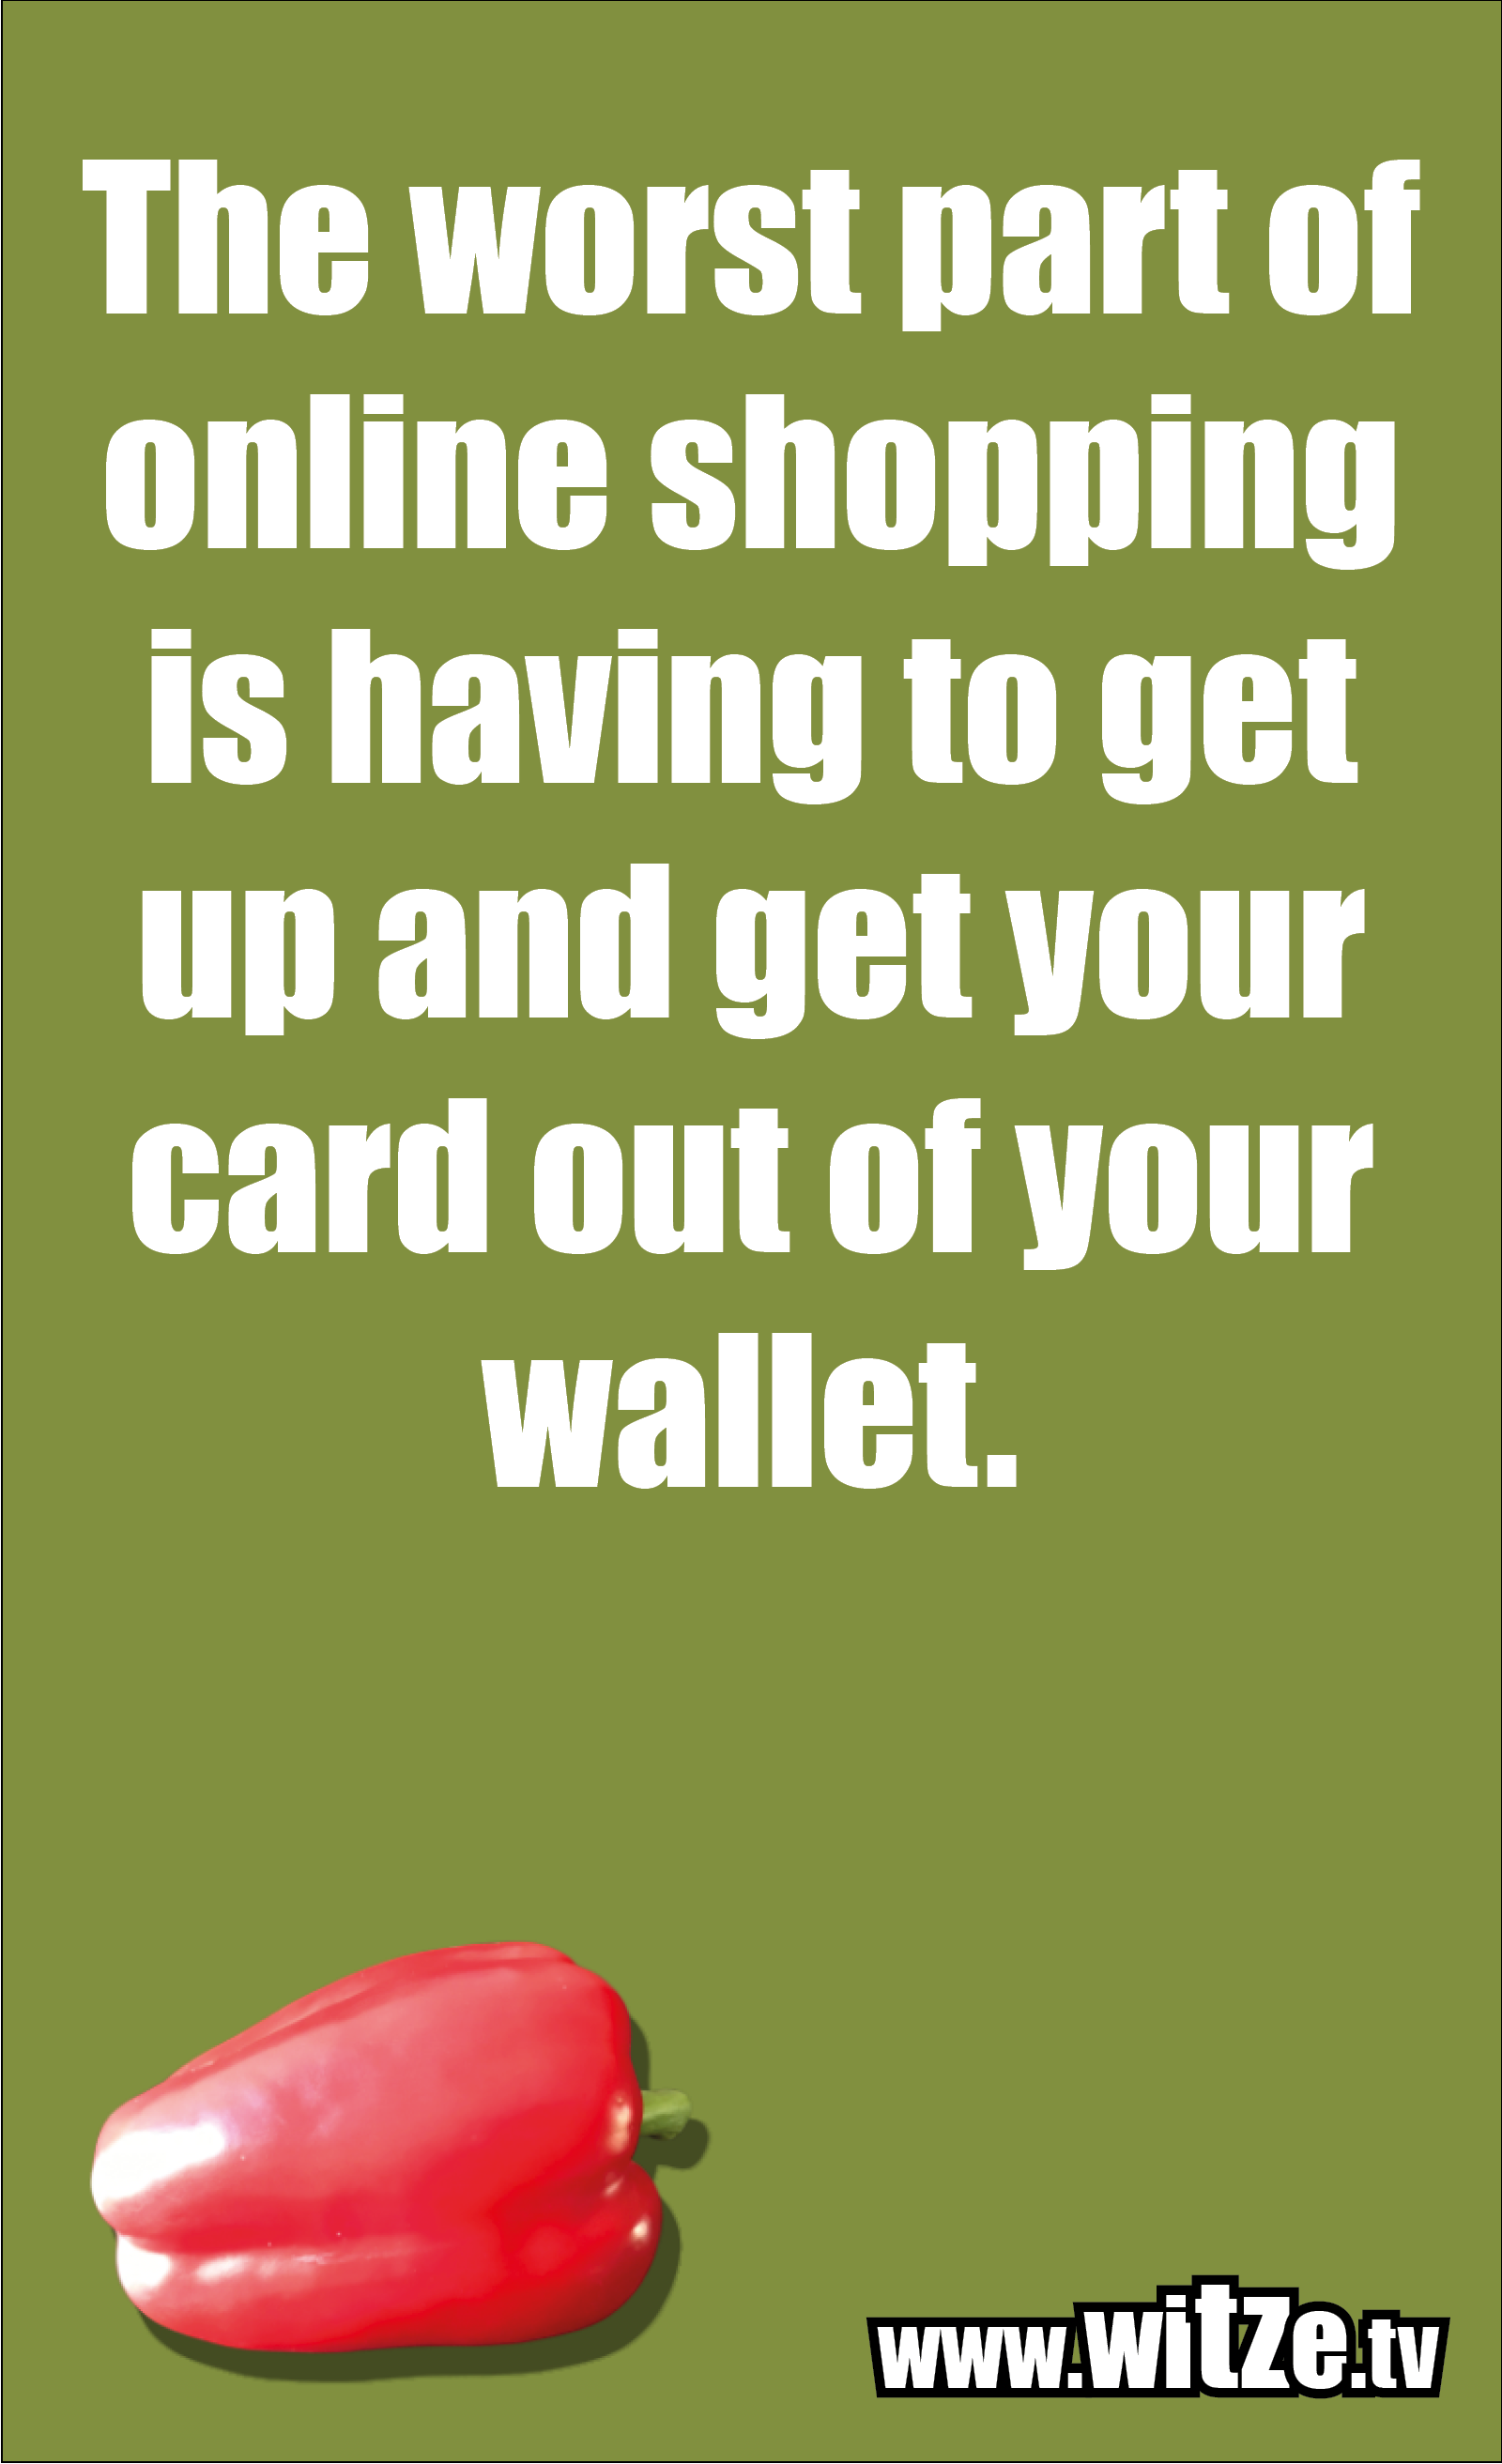 Funny sayings… The worst part of online shopping is having to get up and get your card out of your wallet.